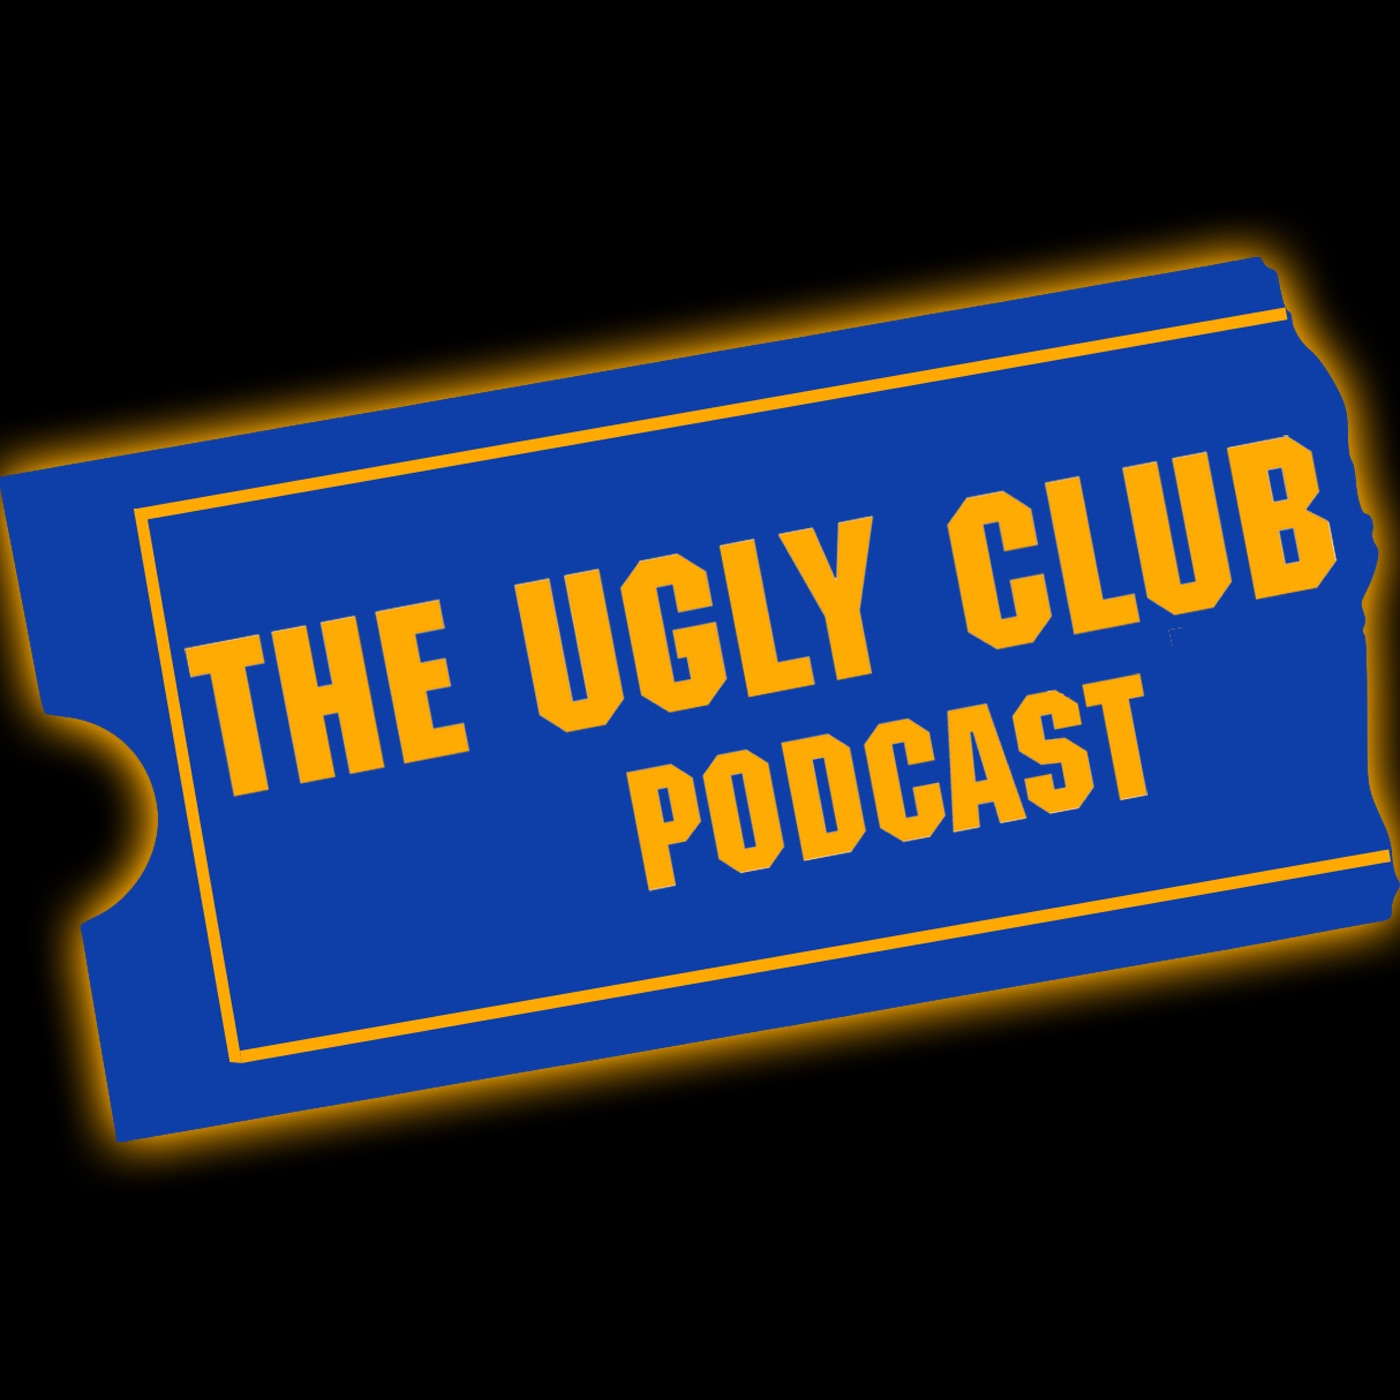 The Ugly Club Podcast